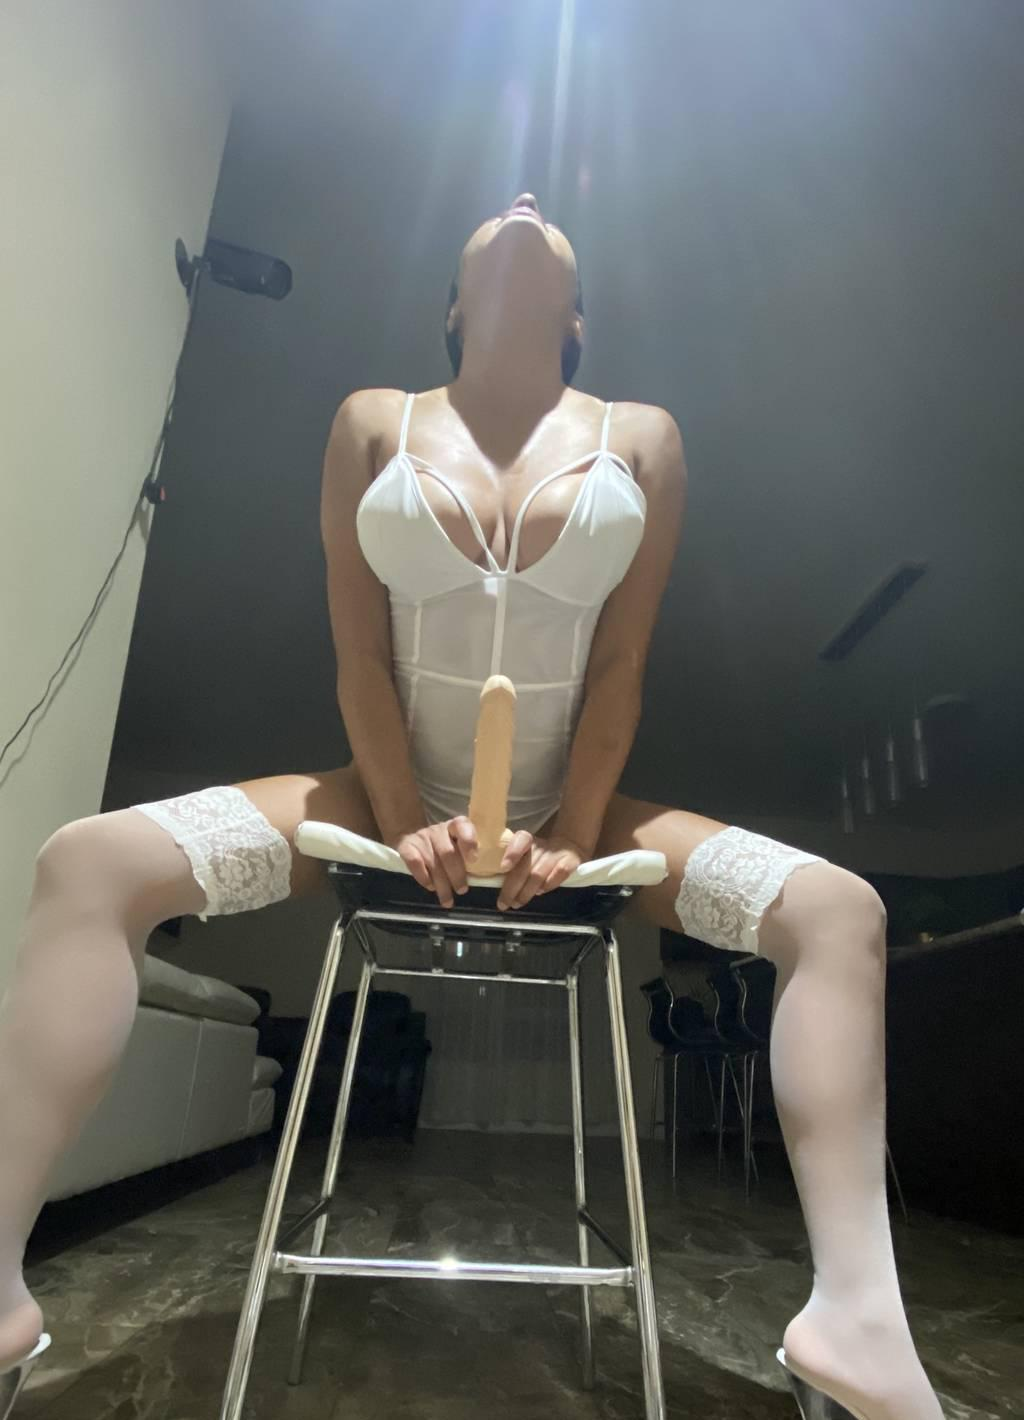 online SQUIRT SHOW,lesbian show strap on,Latinas !